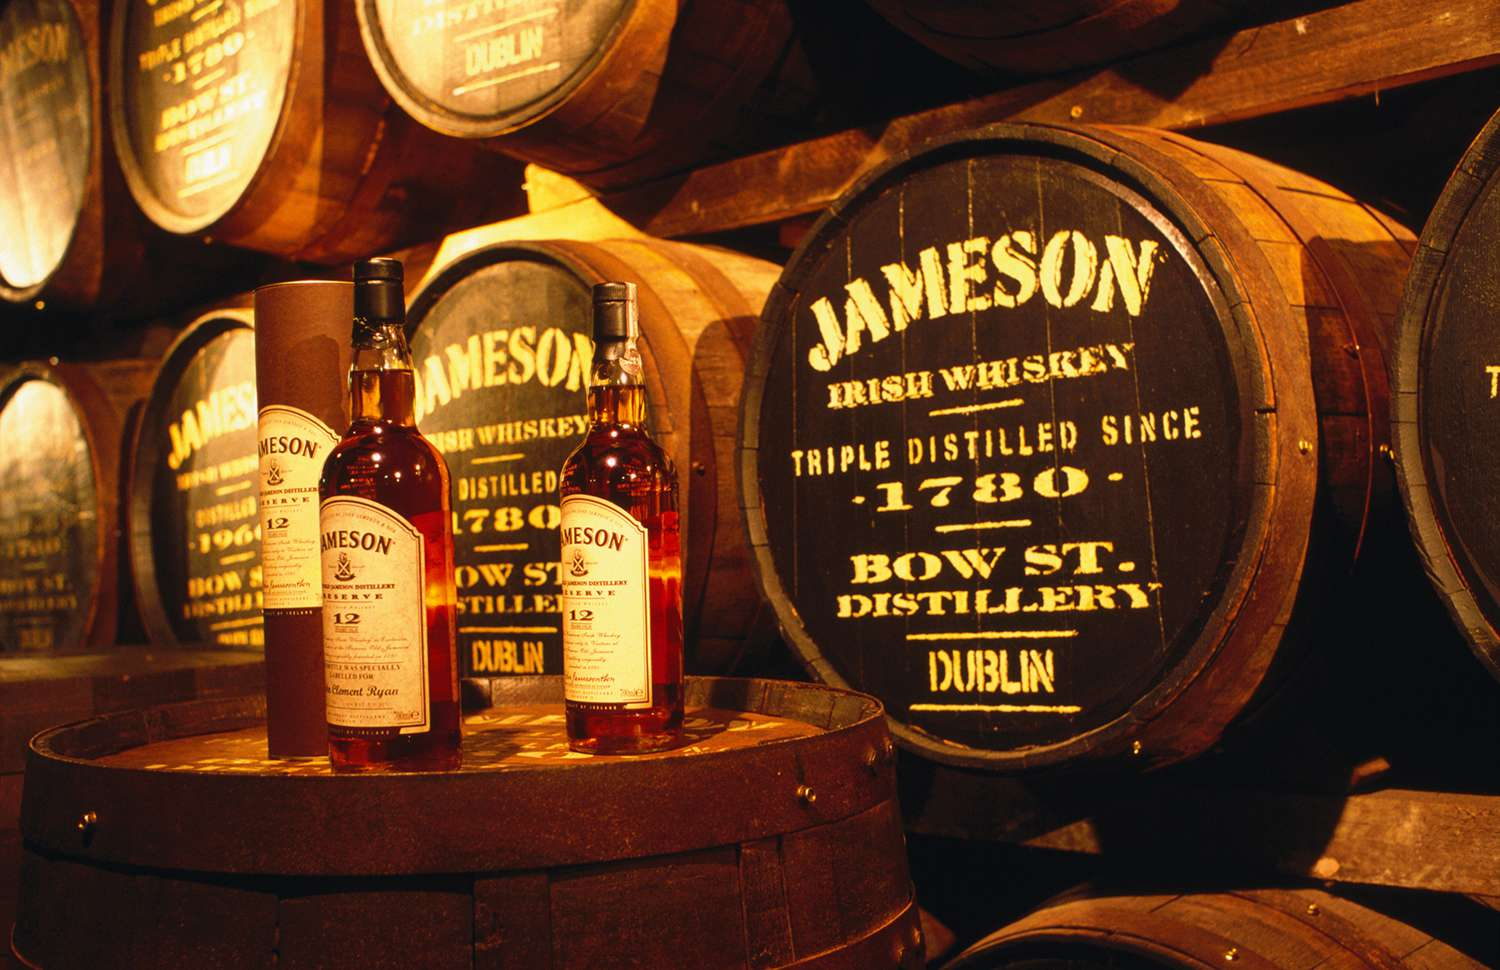 Barriles en la destilería de whisky irlandés Old James